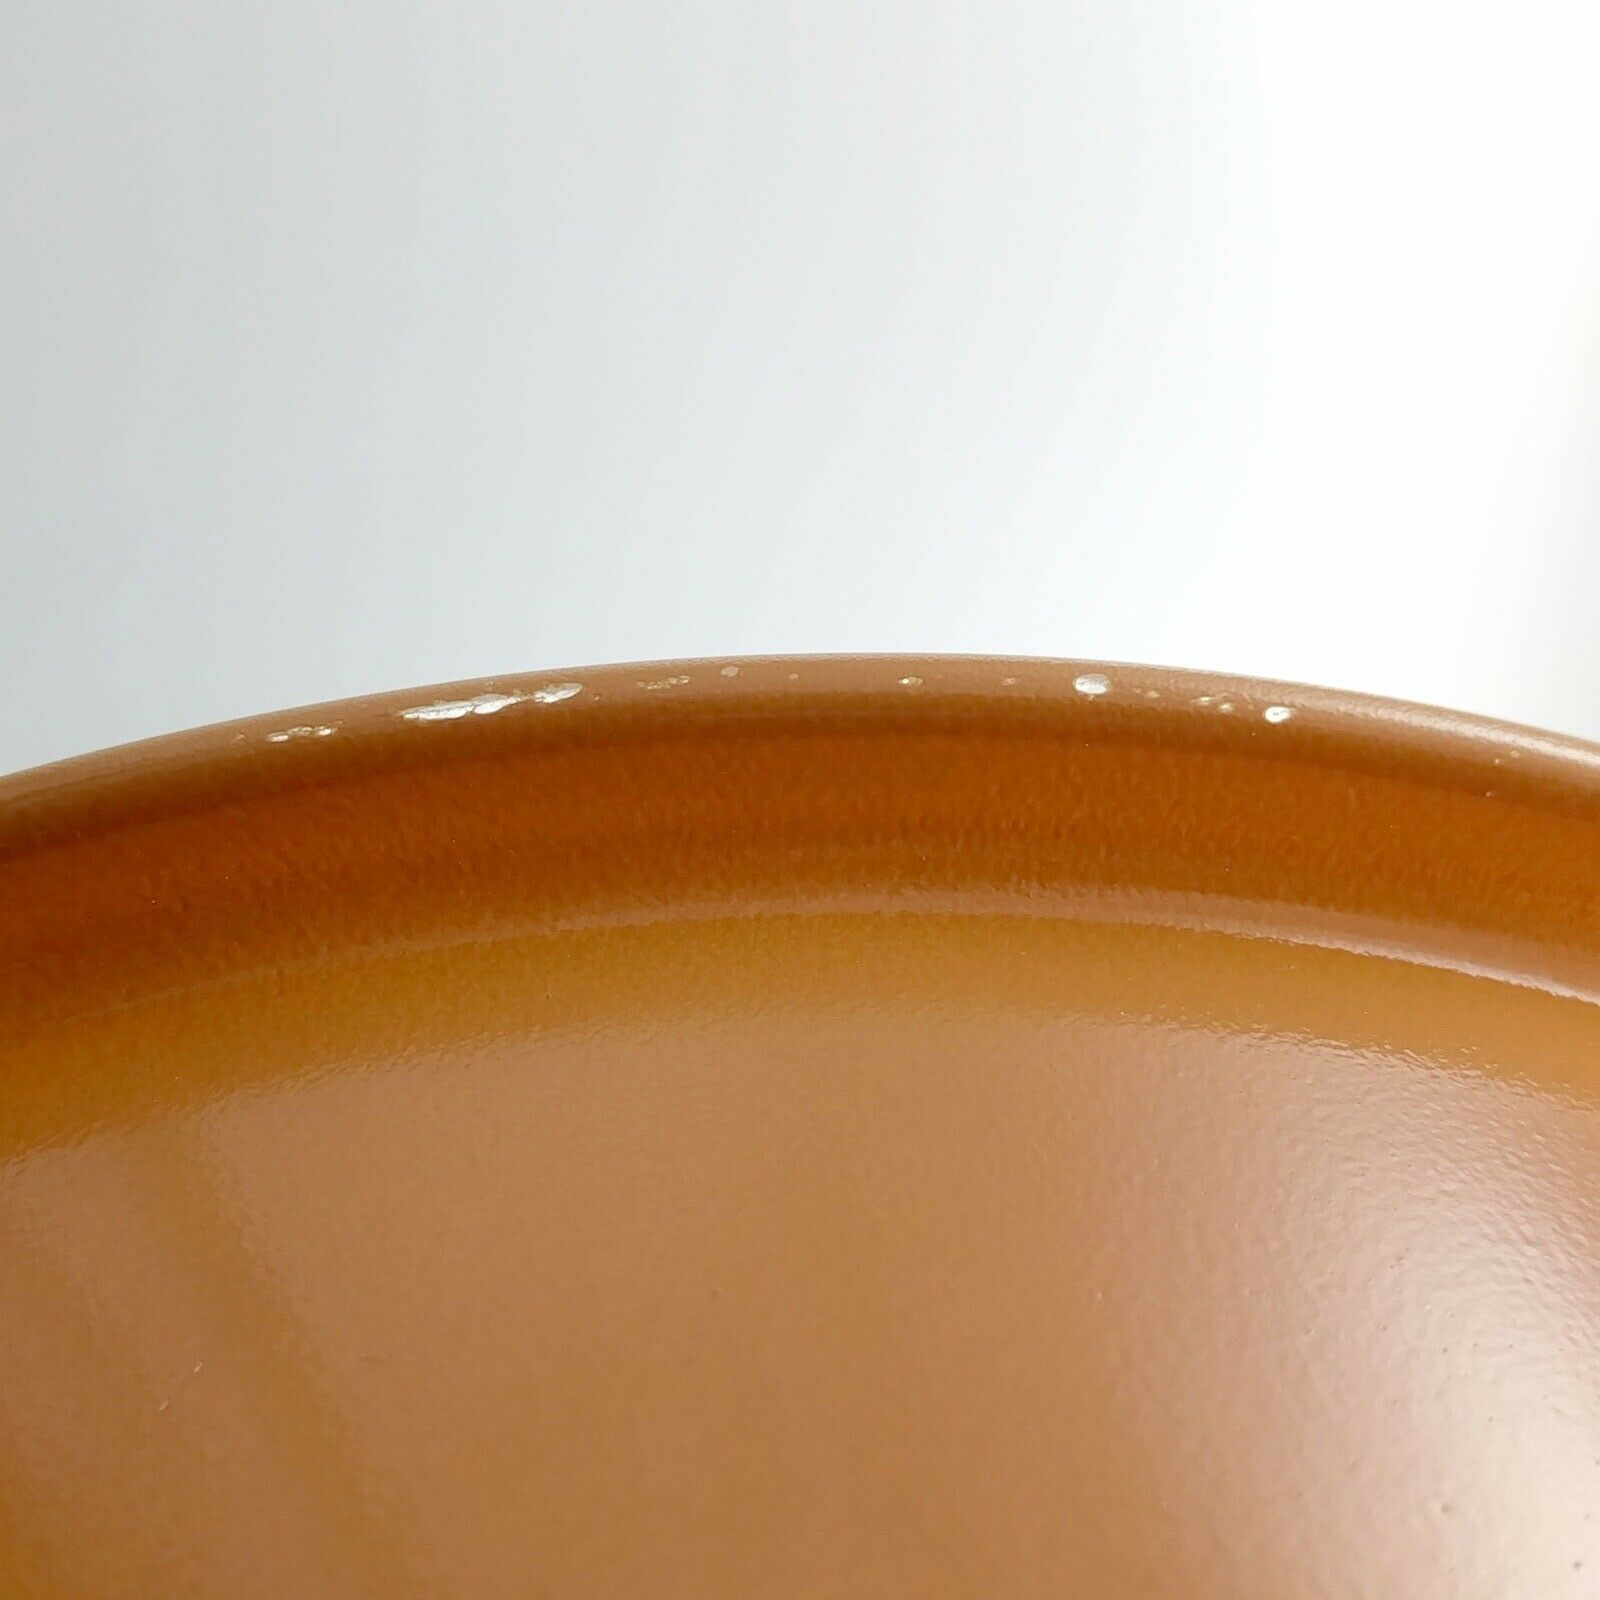 Pyrex 325 Clear Bottom Bowl Beige & Tan Vintage 2½ qt Serving Made in the USA image 6